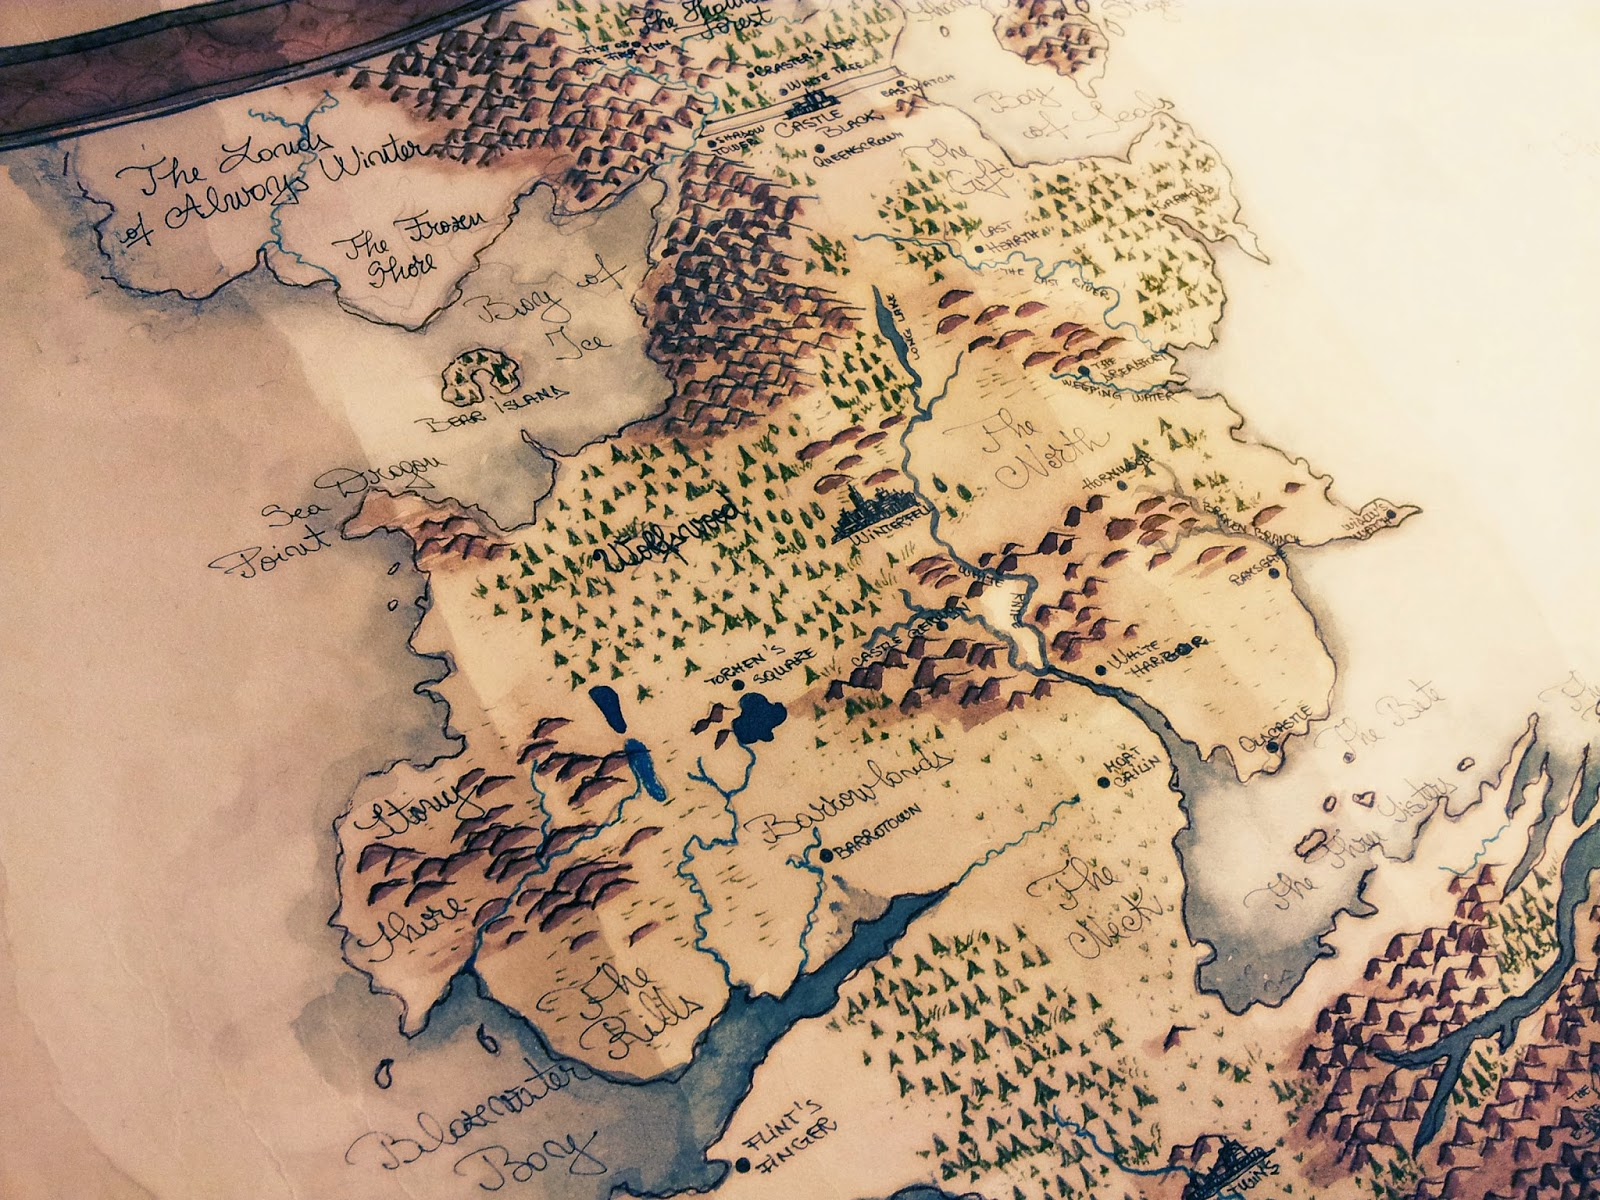 Game Of Thrones Map Westeros And The Free Cities Loredanamicu